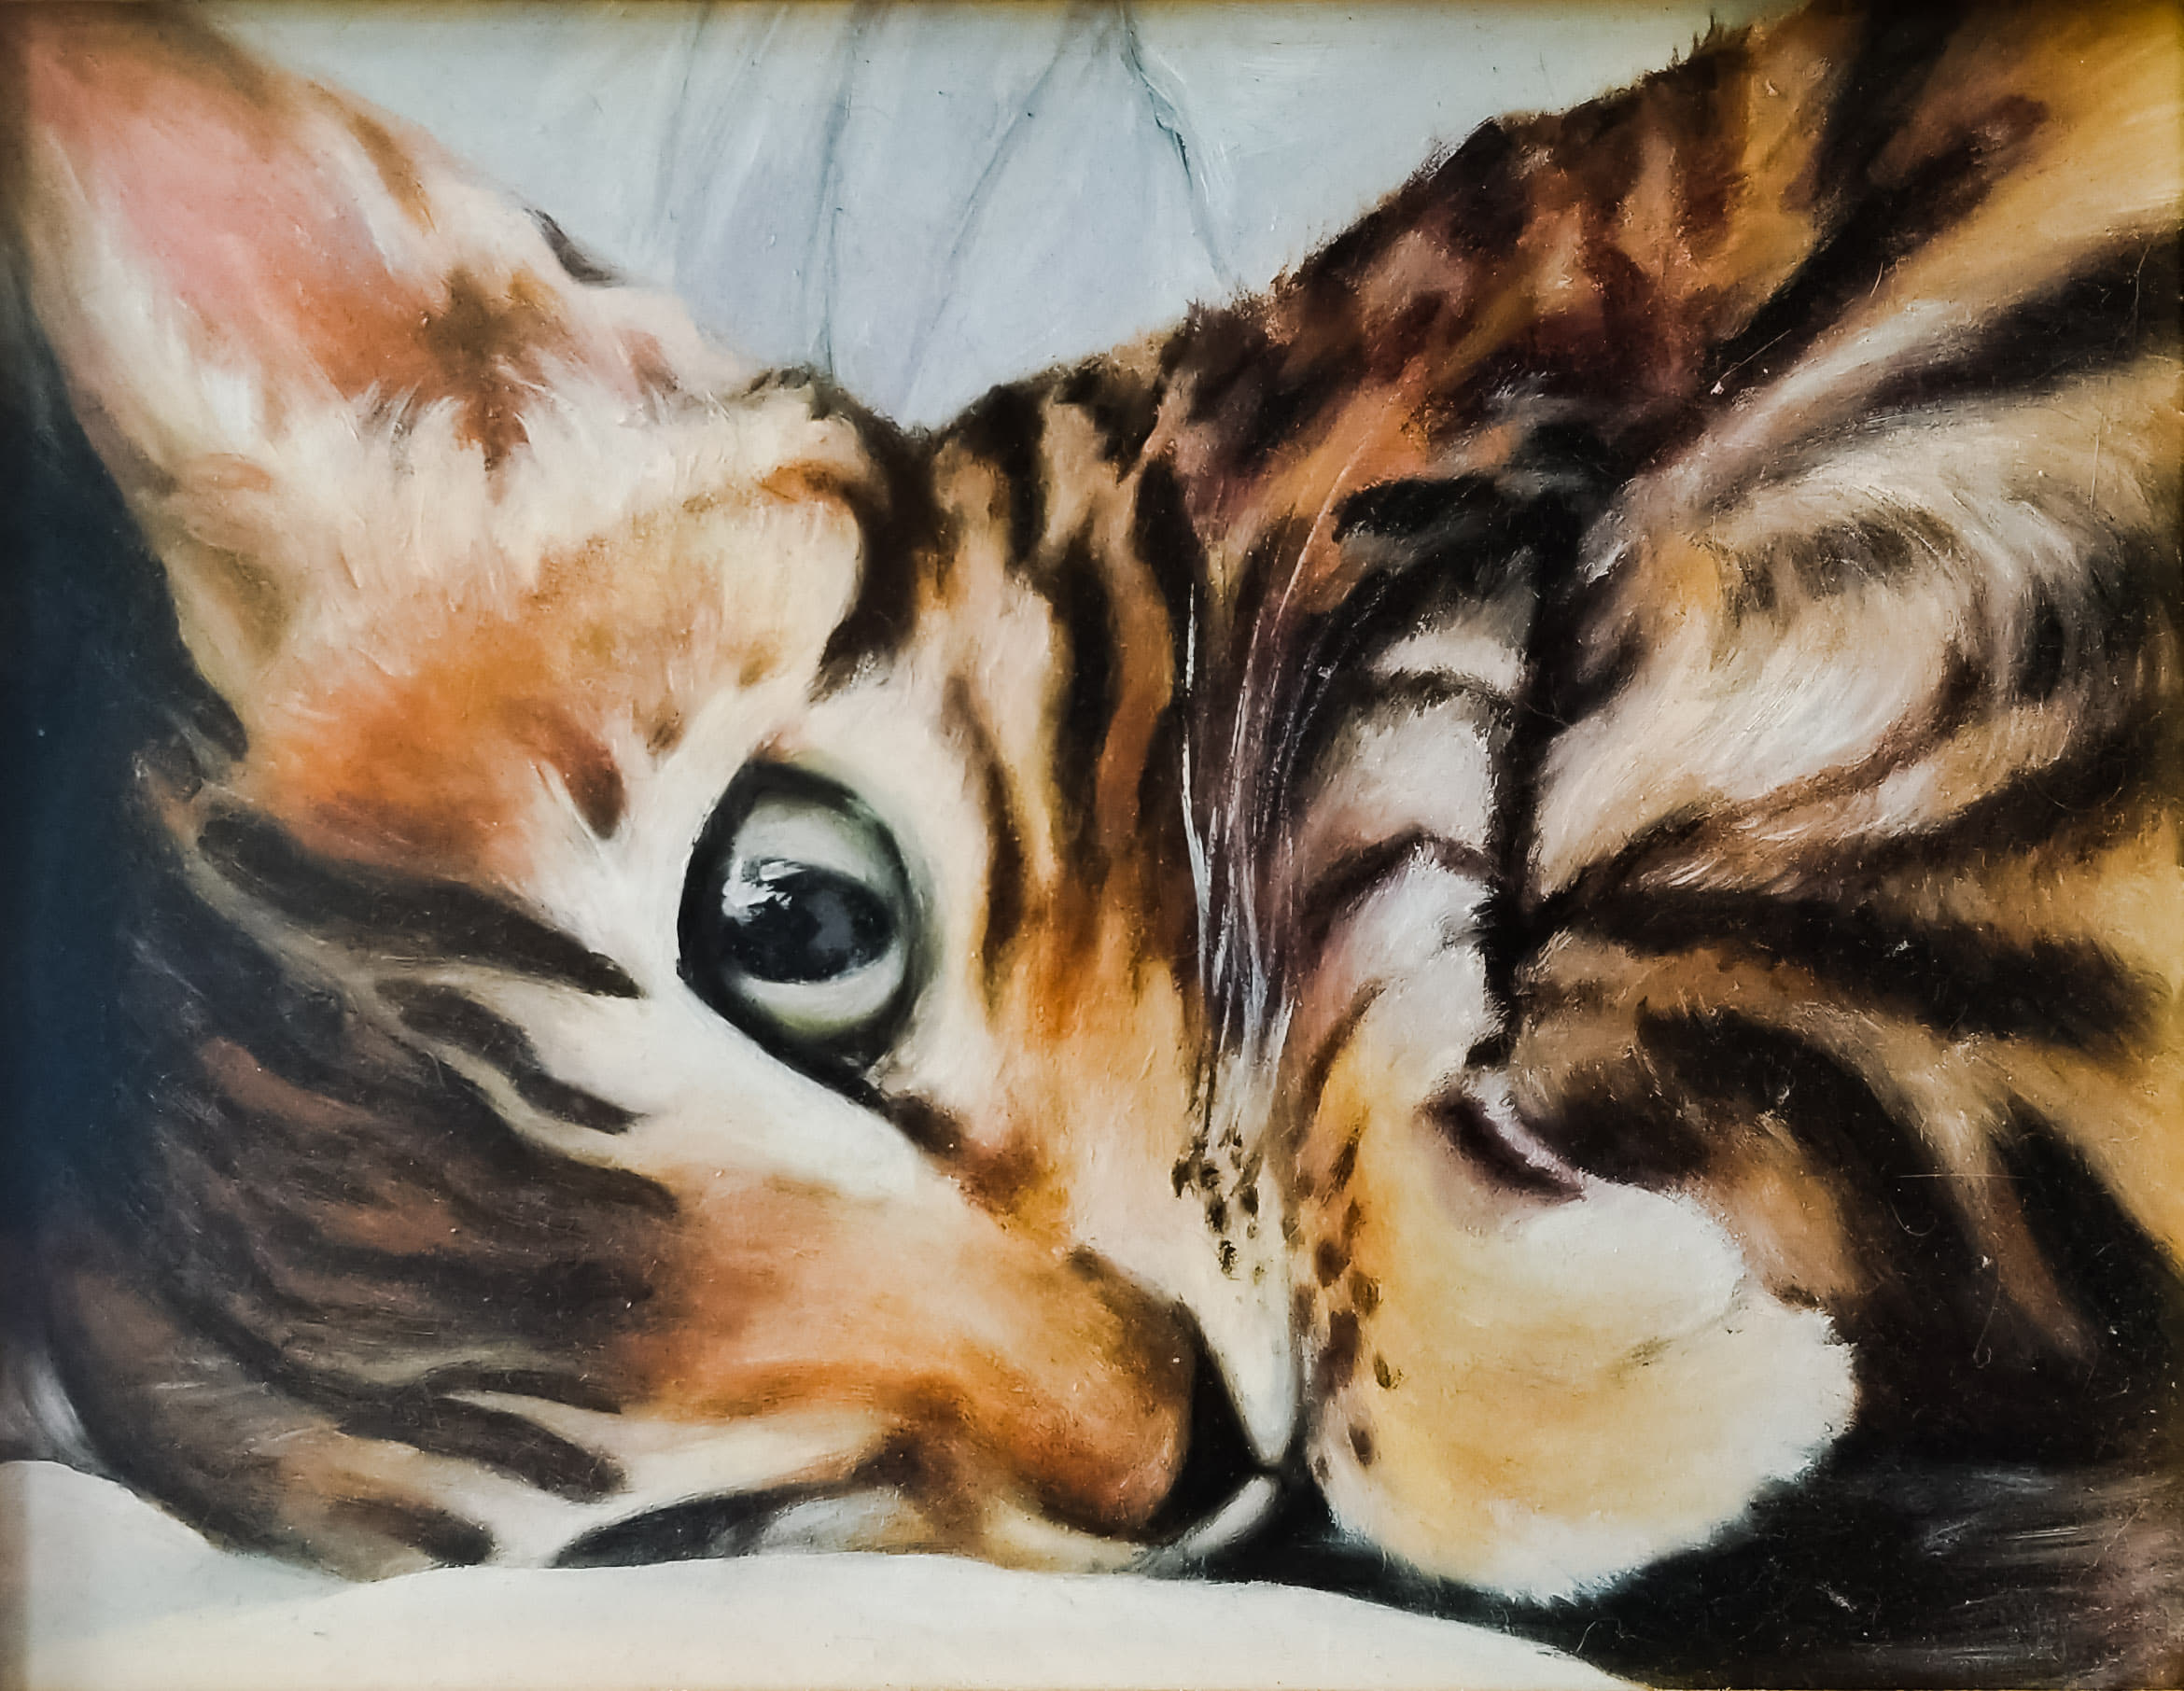 Simba   oil paints on illustration board  Pet portrait of kitten   © Copyright Camille Codling 2019